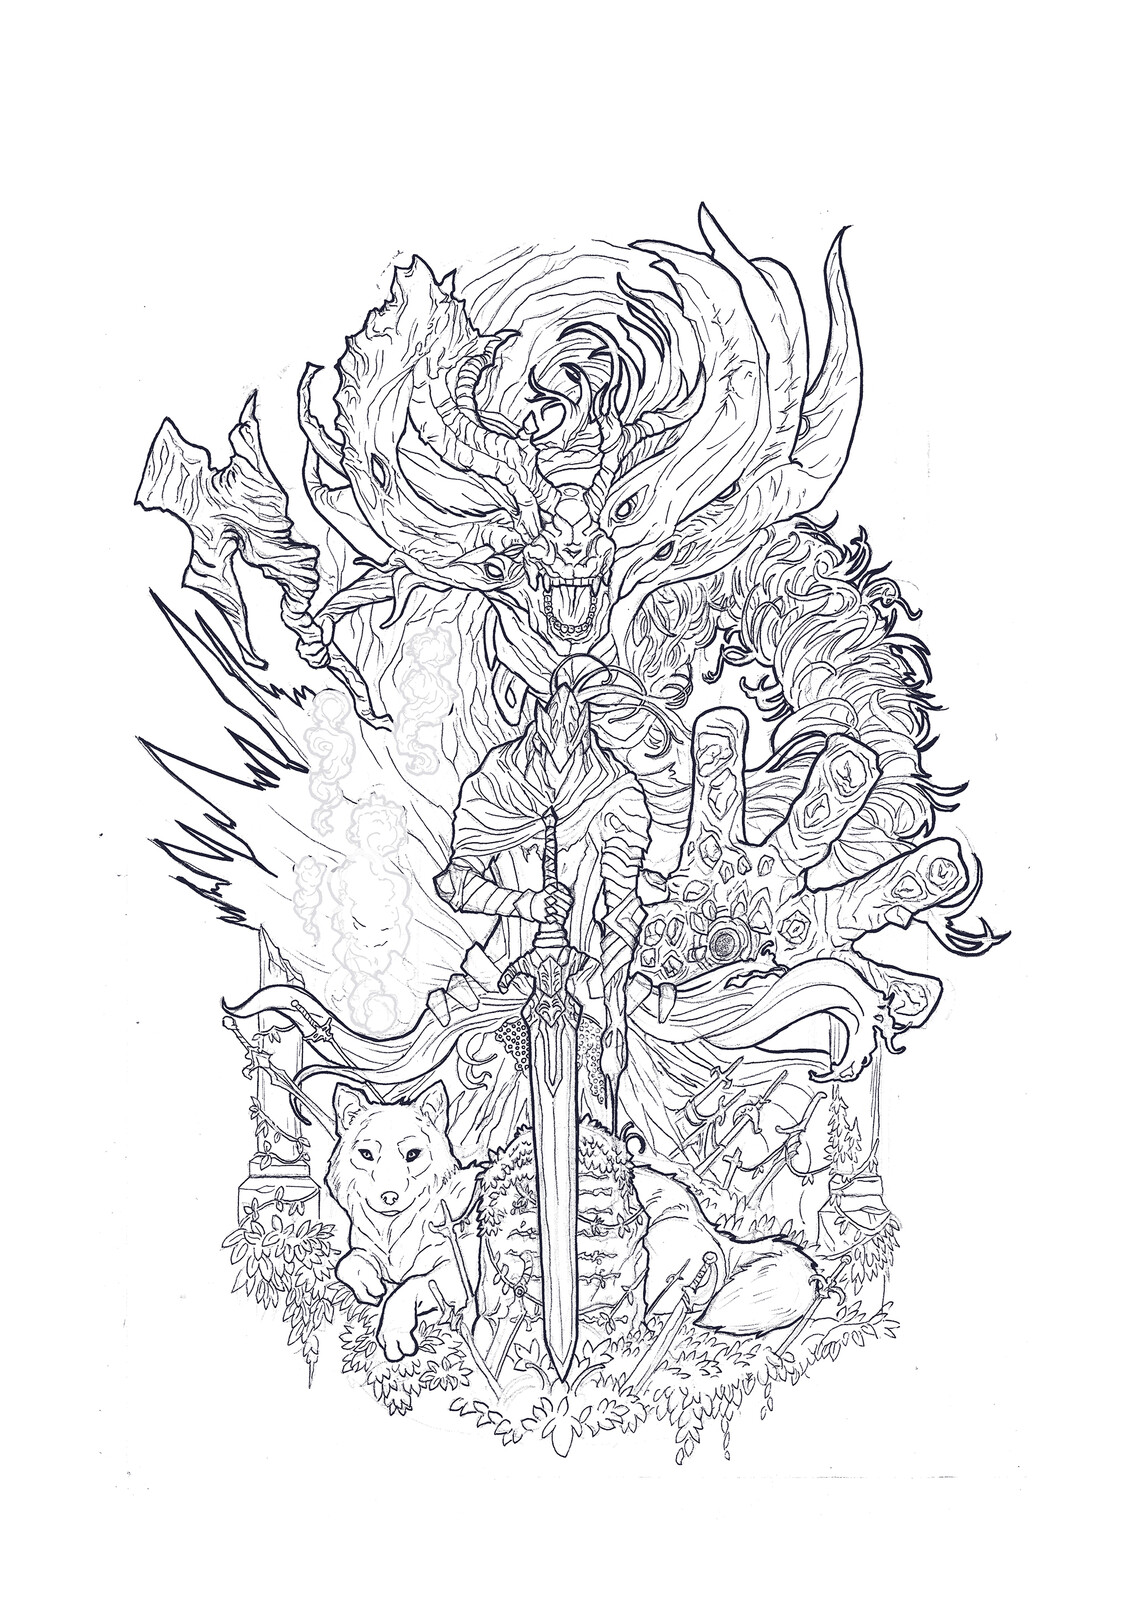 Line-Art made with traditional ink.